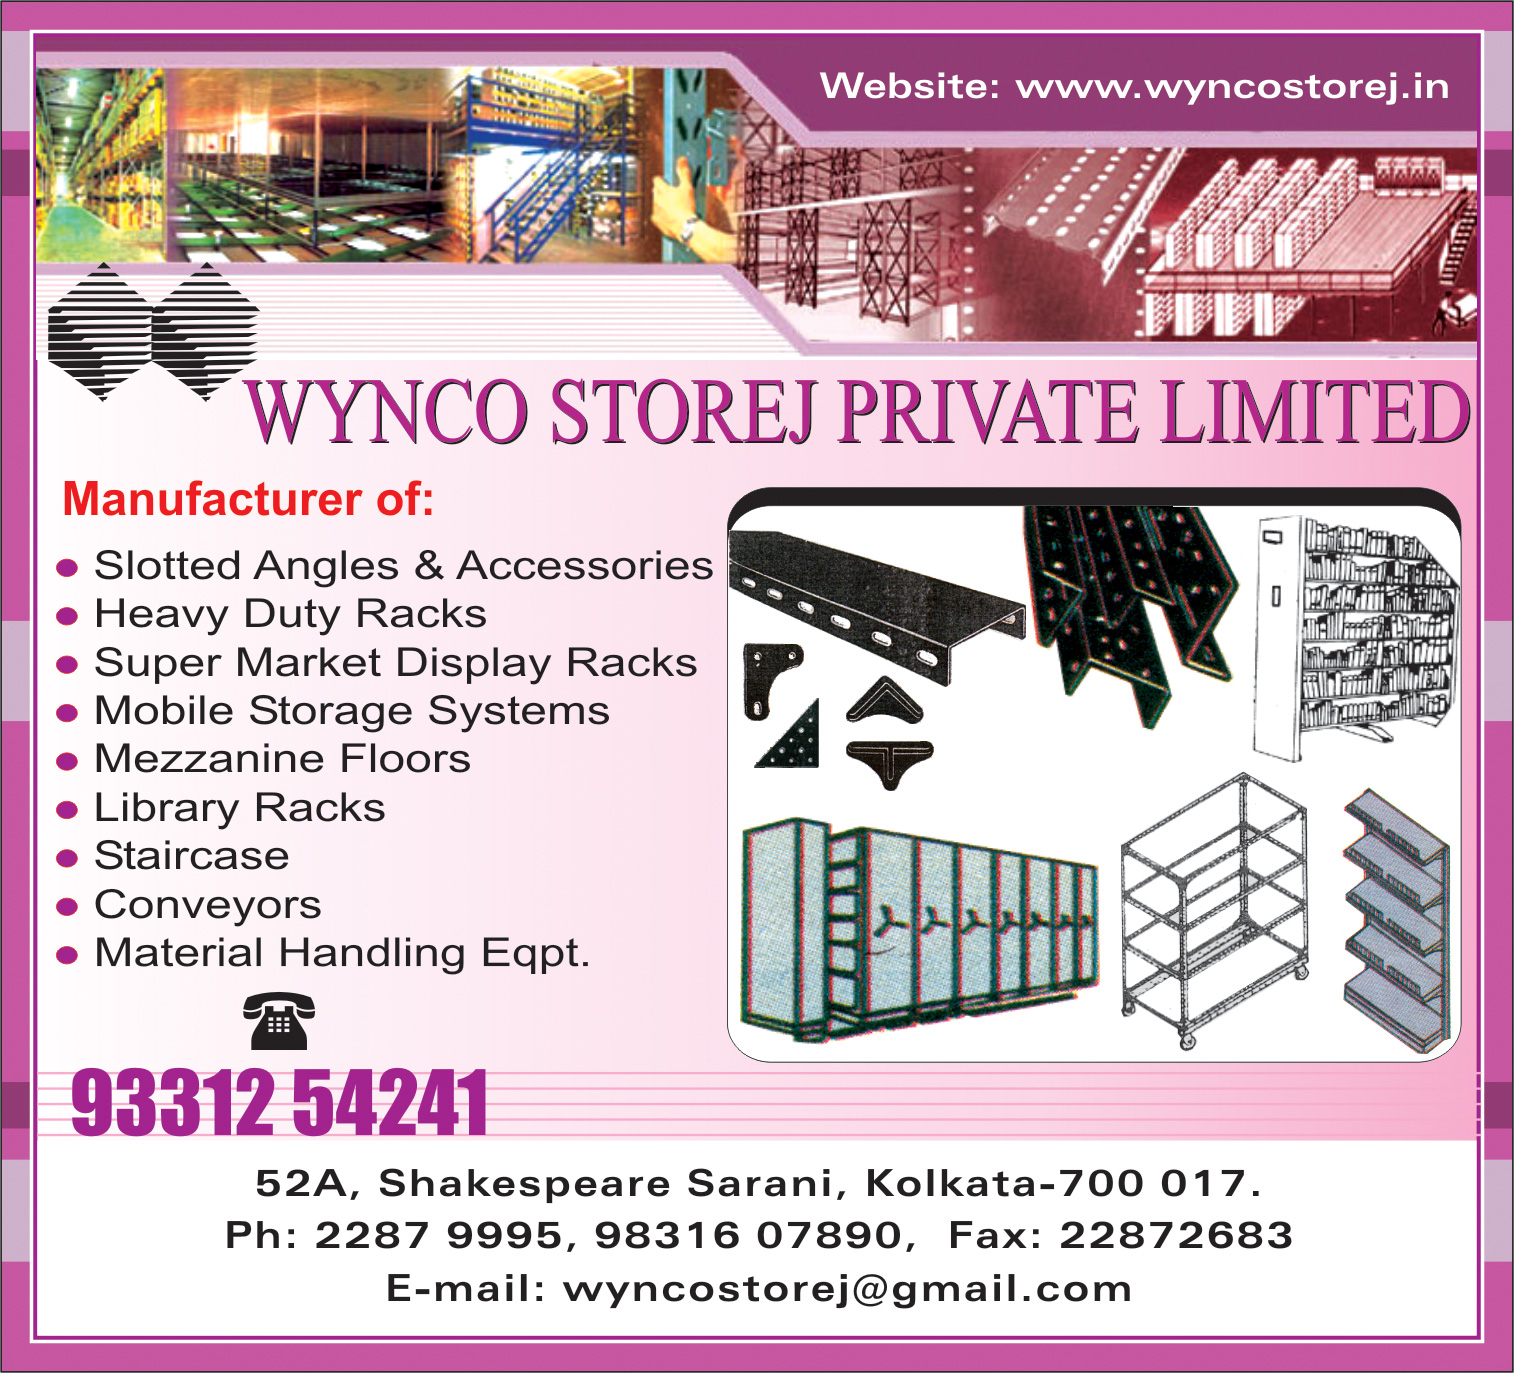 WYNCO STOREJ PVT LTD Slotted Angles Kolkata Yellow Pages Kolkata West Bengal